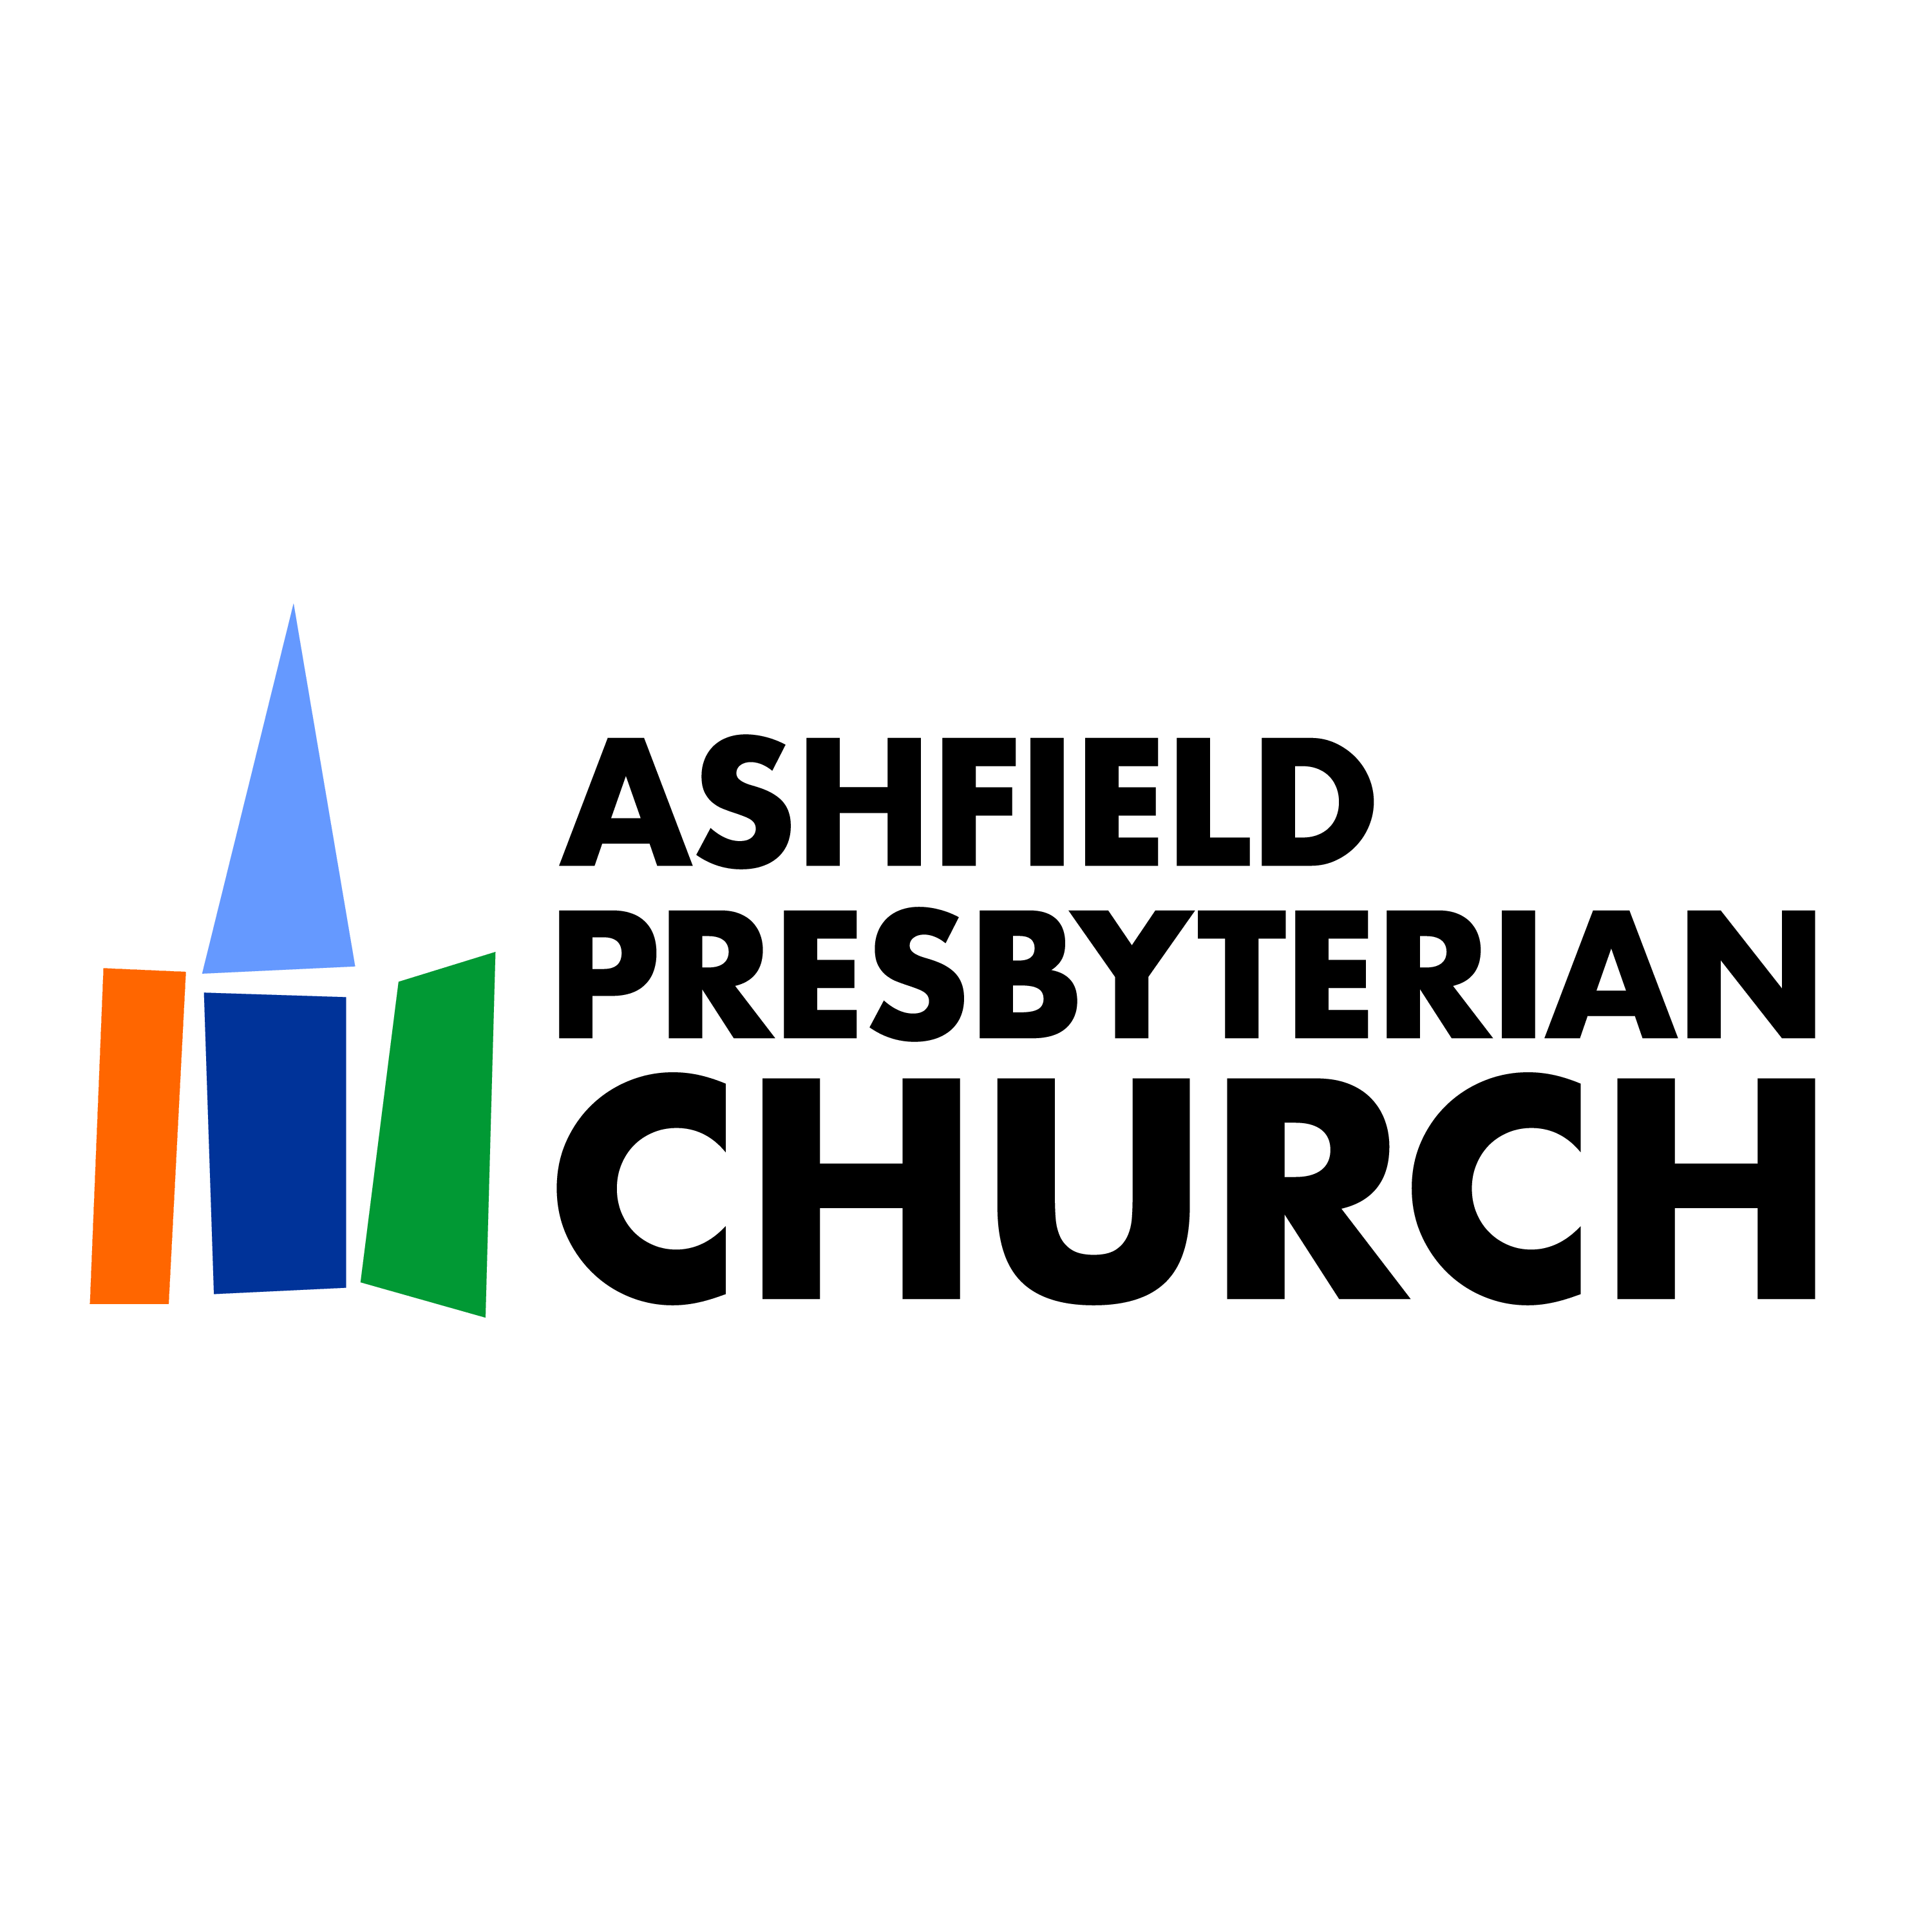 Ashfield Presbyterian Church